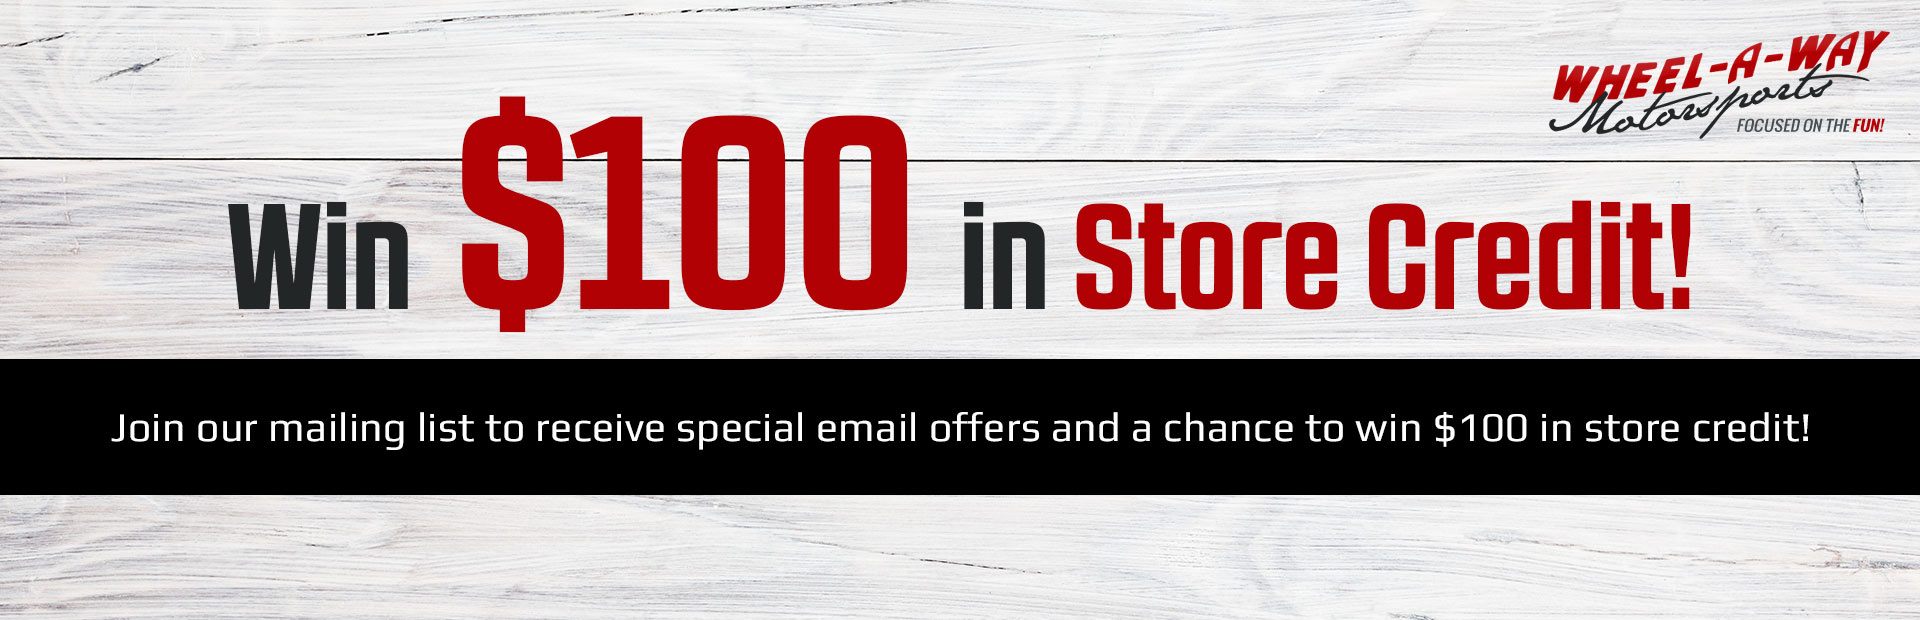 Join our mailing list today to receive special email offers and a chance to win $100 in store credit! Contact us for details.